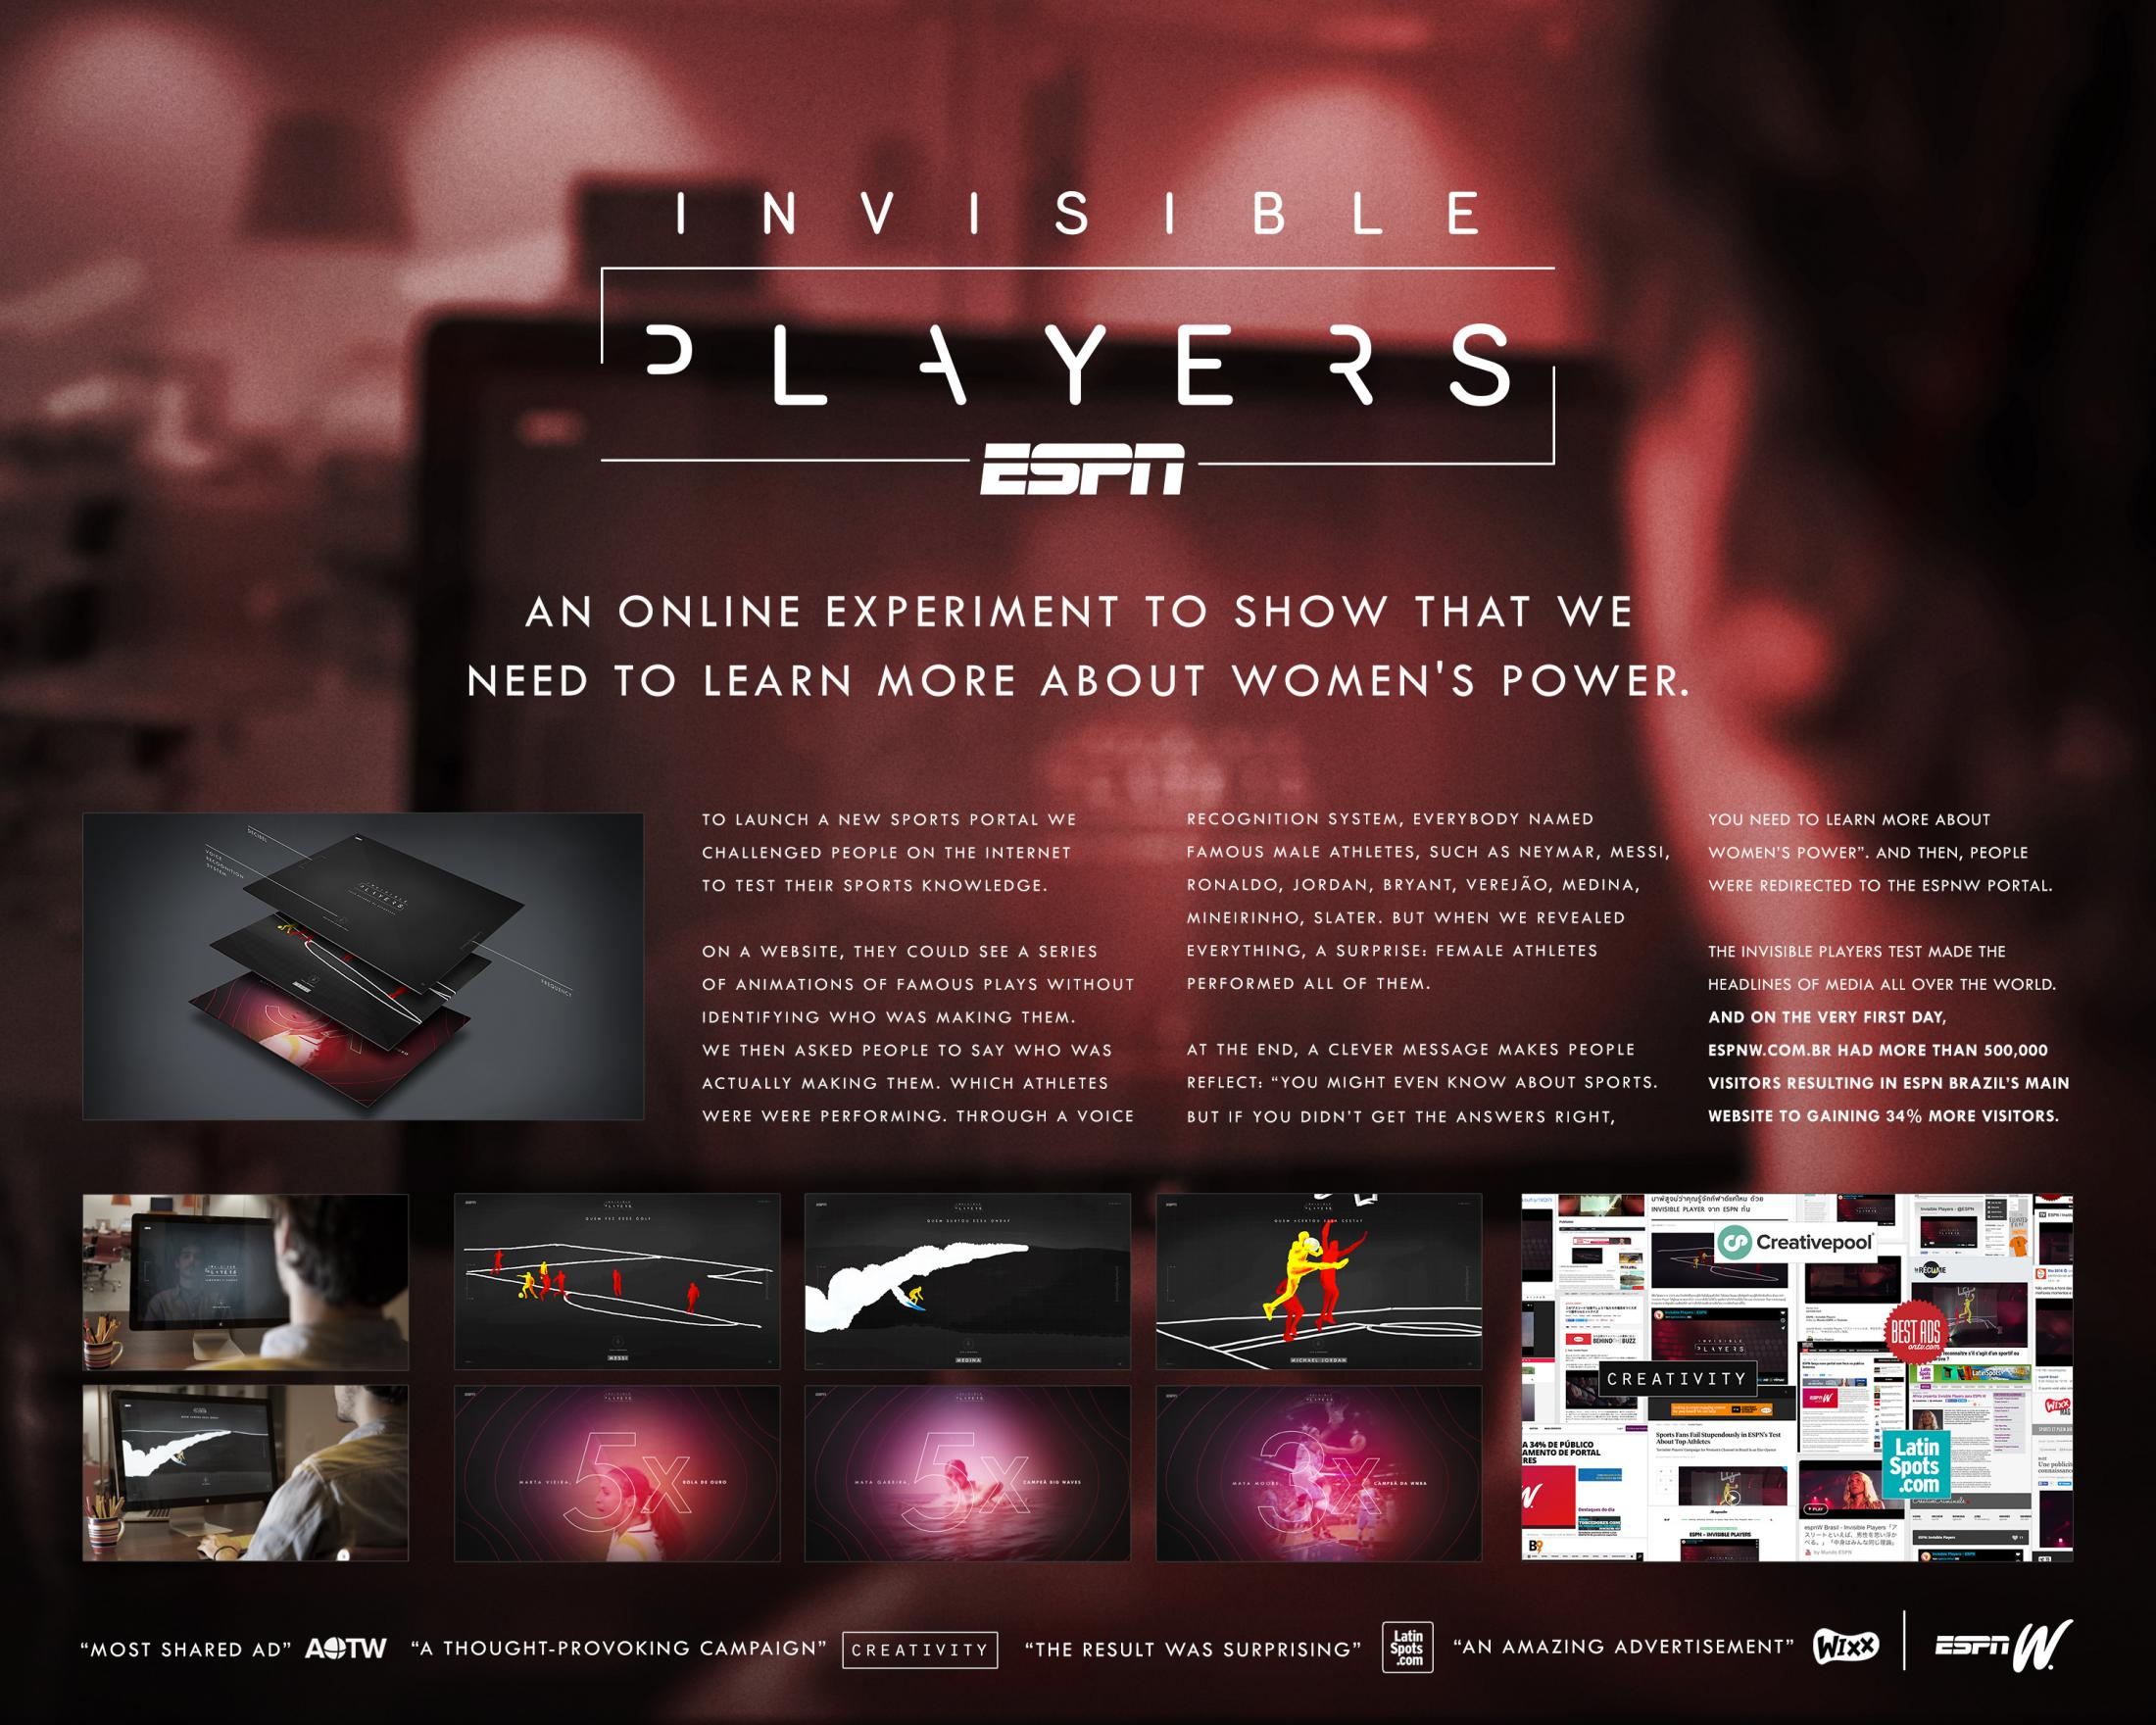 Image Media for ESPN W - Invisible Players